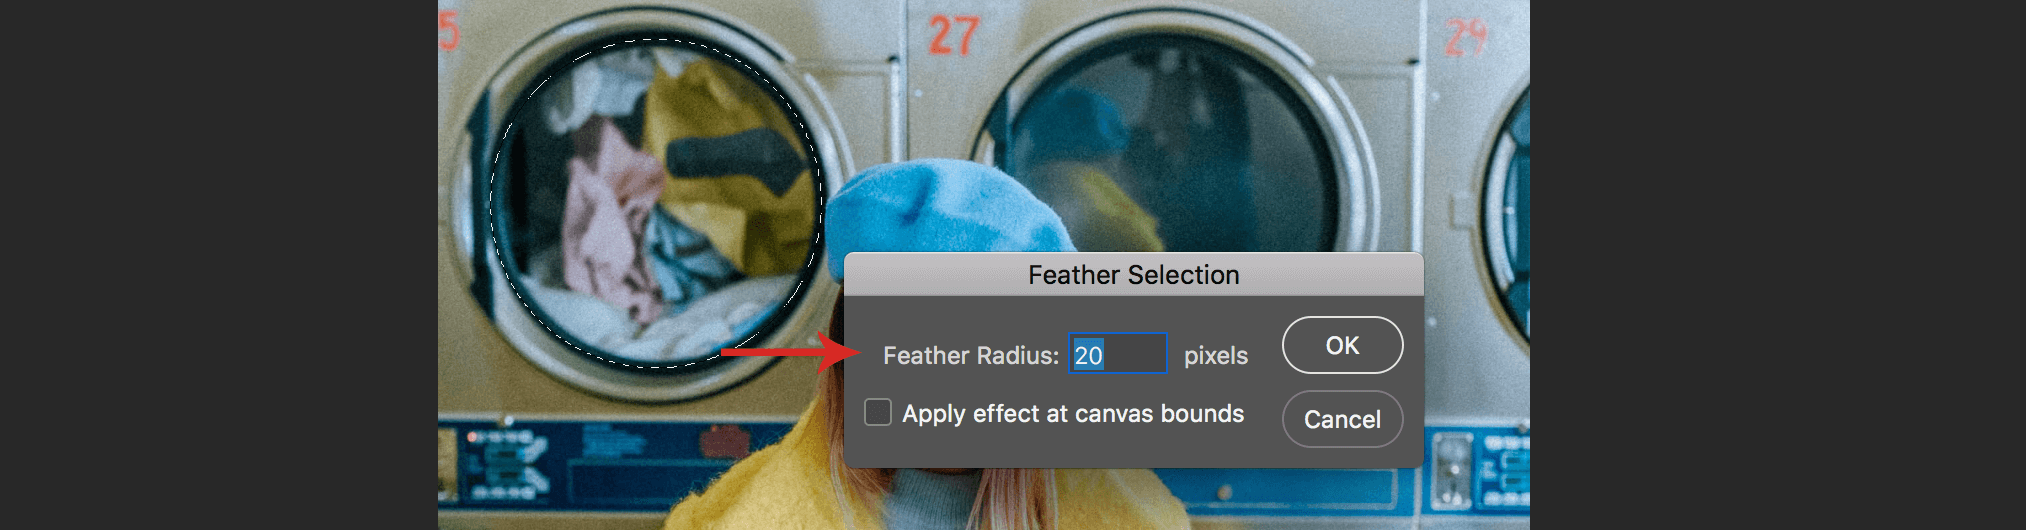 Feather-Layer.png